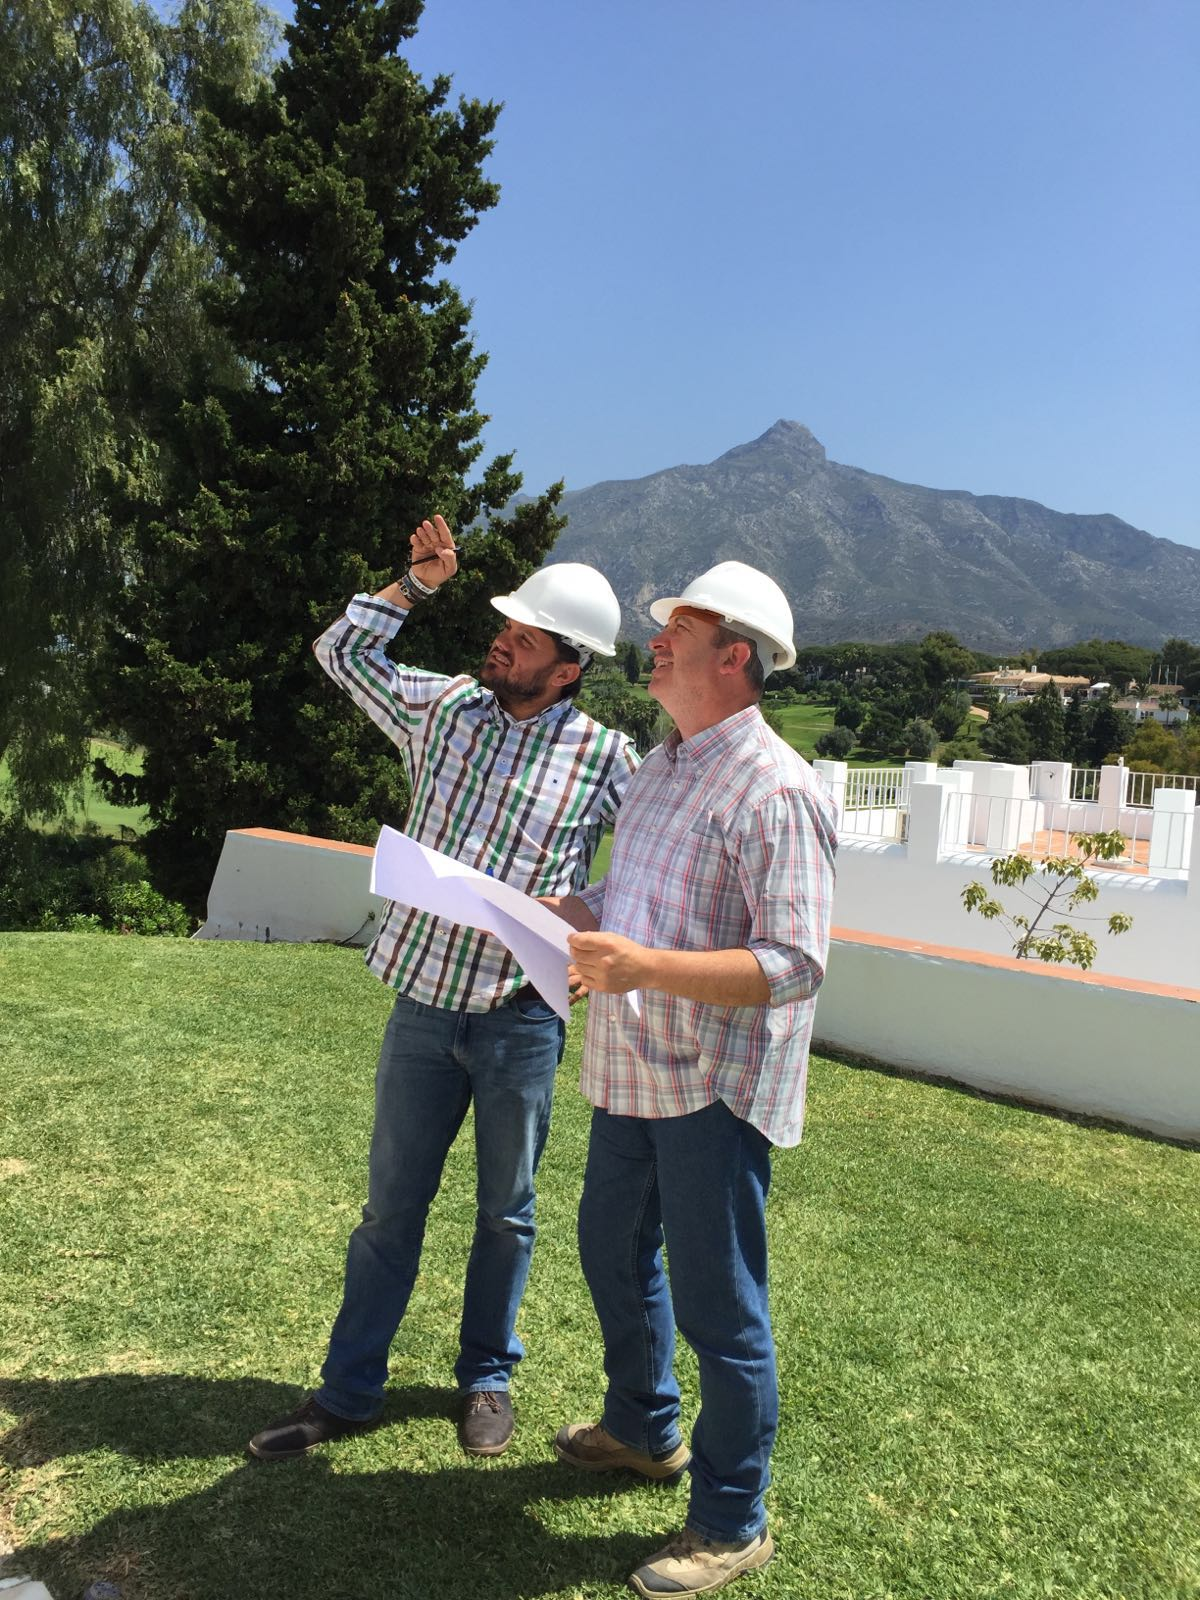 Experts surveying before buying land in Spain